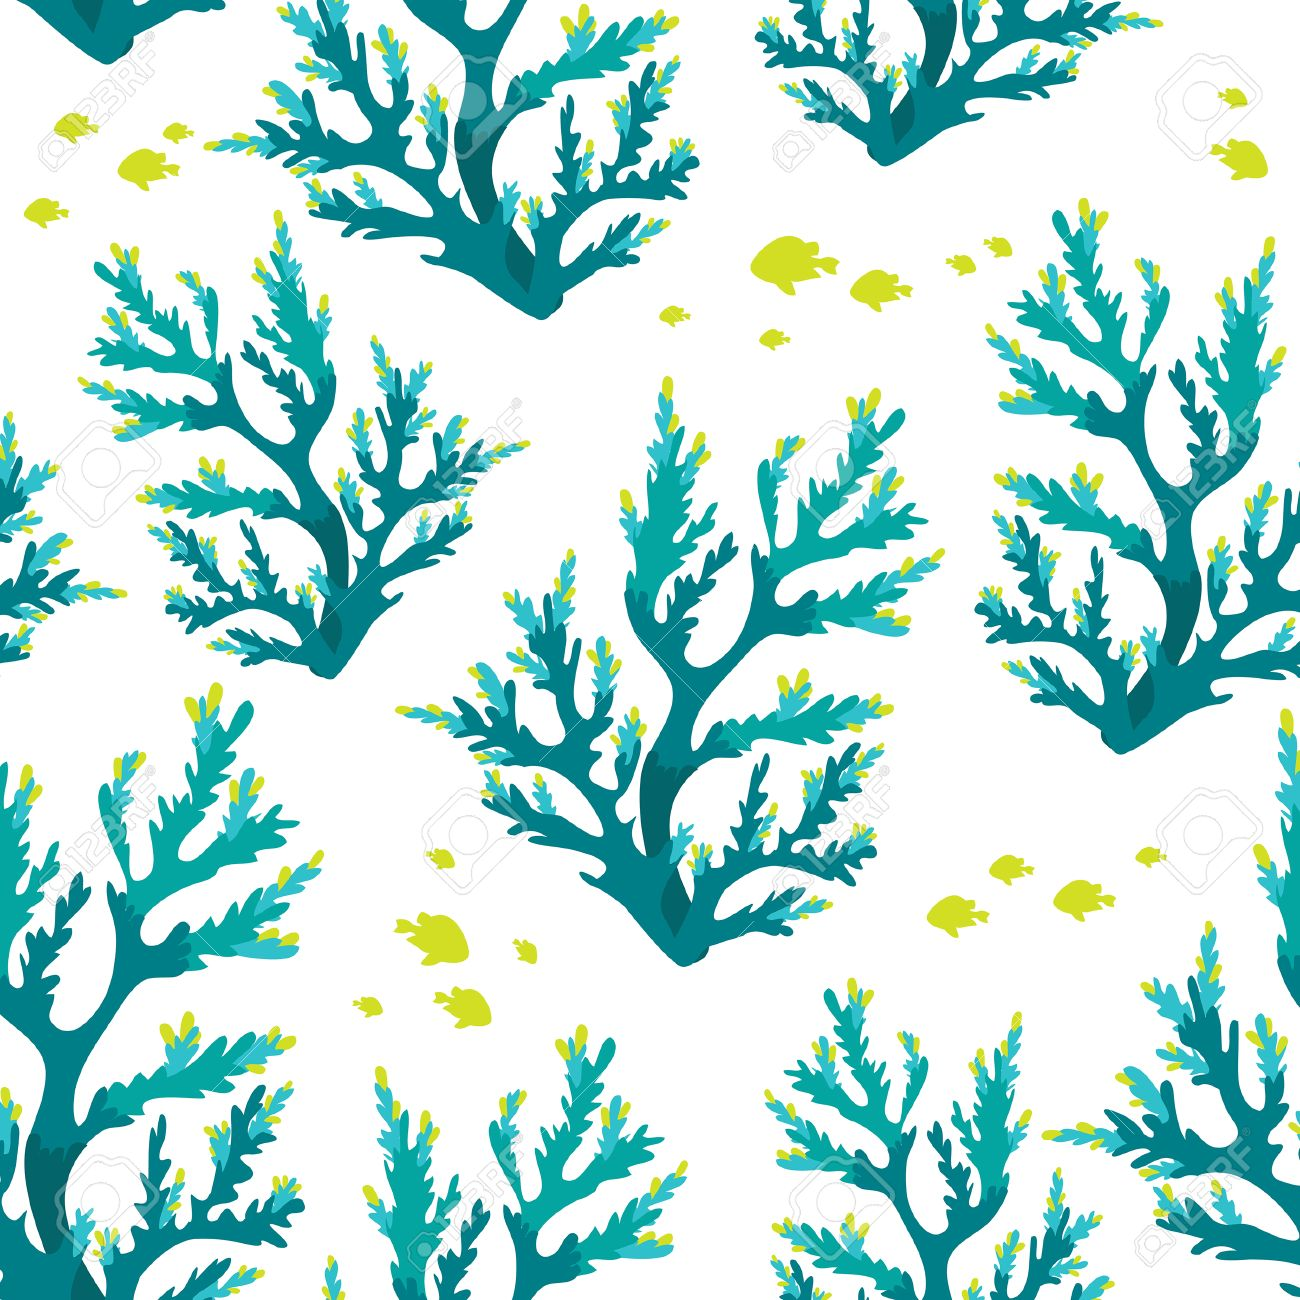 Seamless Underwater Pattern With Blue Corals And Fish Sea Life Wallpaper Stock Vector